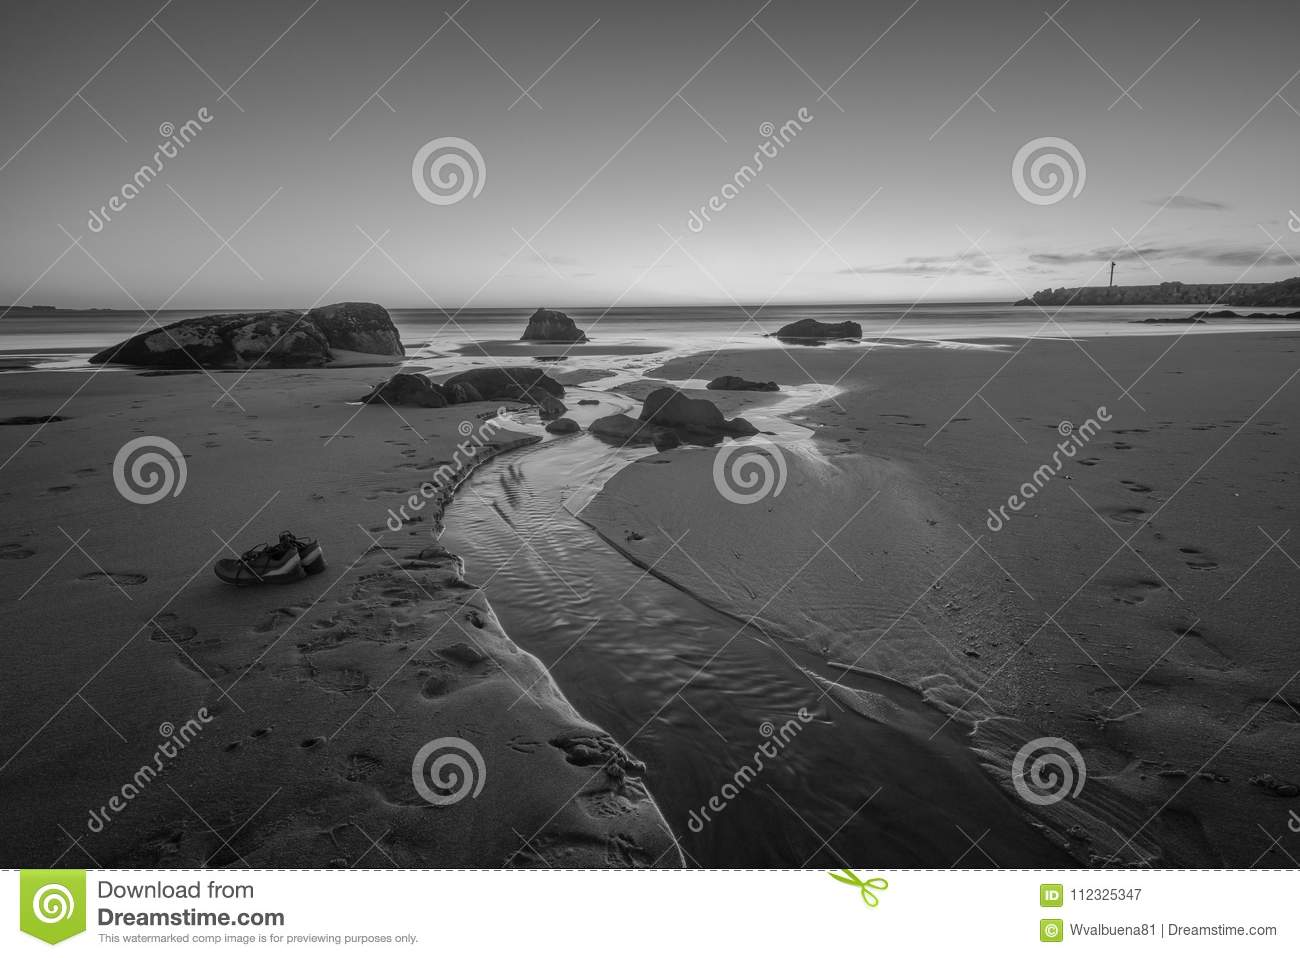 Black And White Photography Sunset On The Beach With Water Pound Rocks A Pair Of Shoes